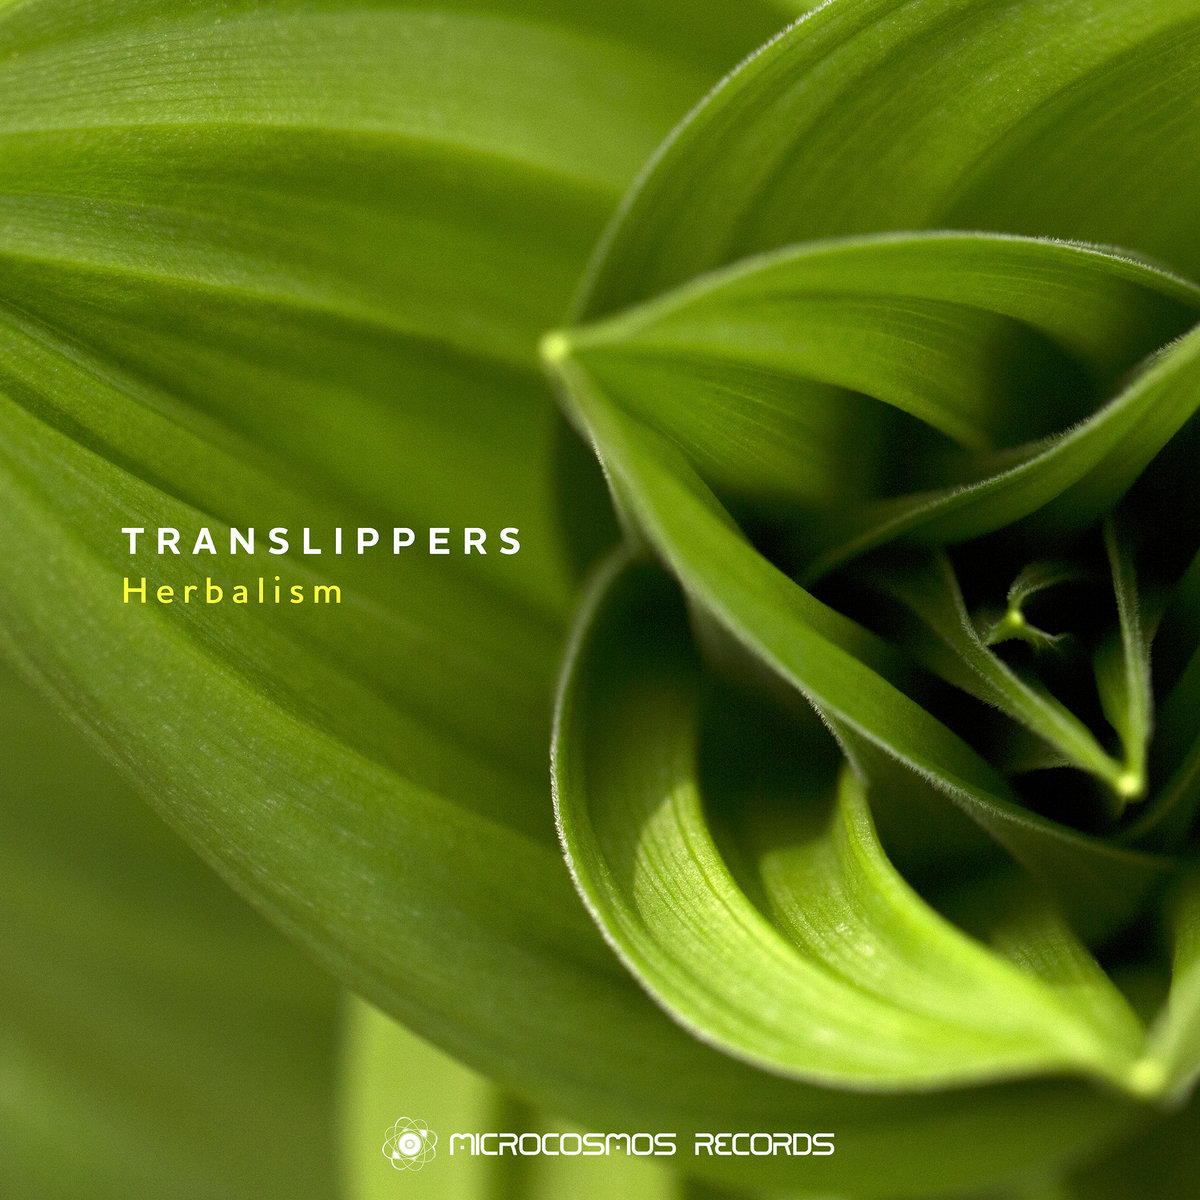 Translippers - Secret Path (Album Version) @ 'Herbalism' album (ambient, chill-out)